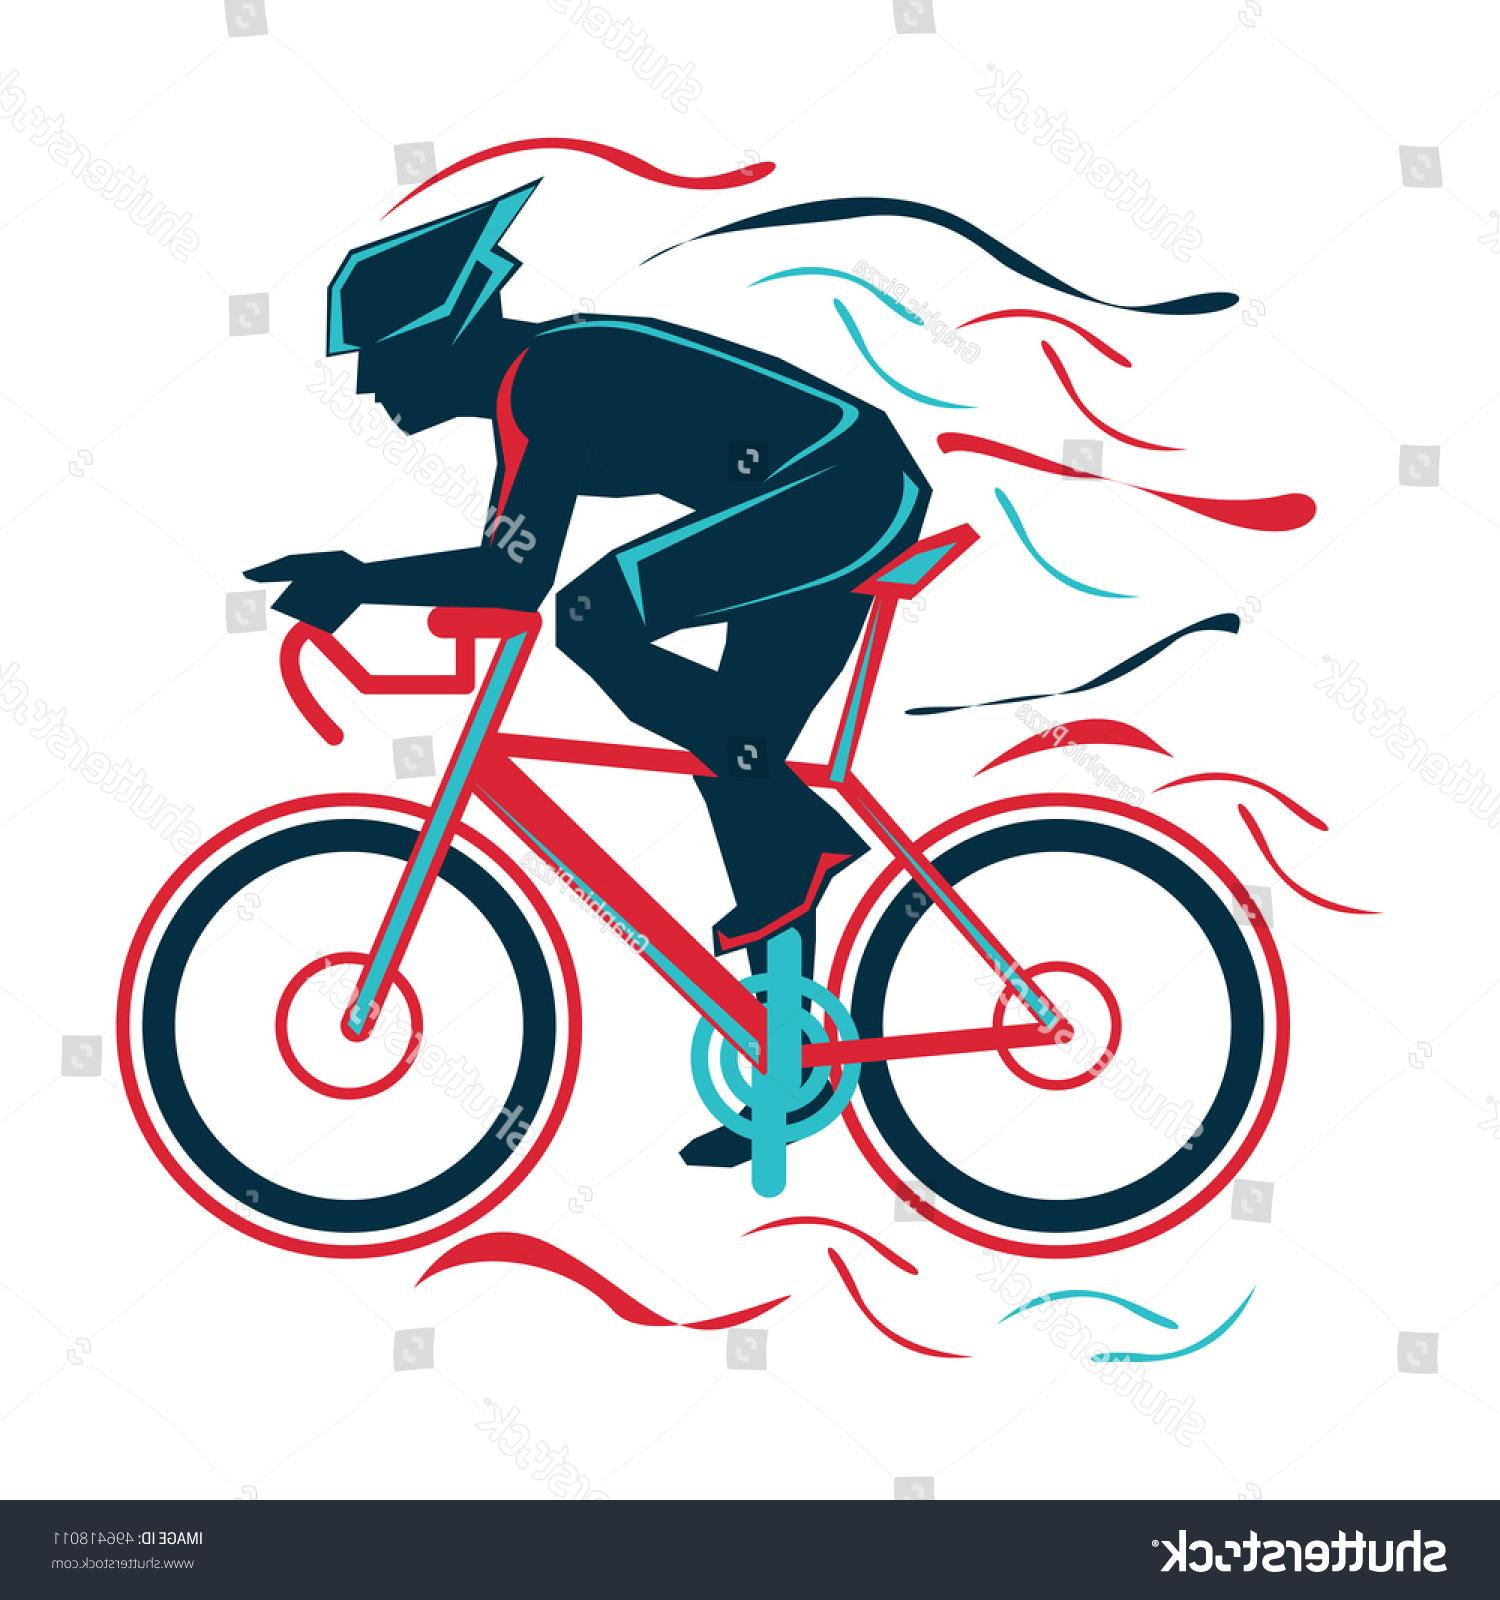 HD Bike Vector Logo Images » Free Vector Art, Images.